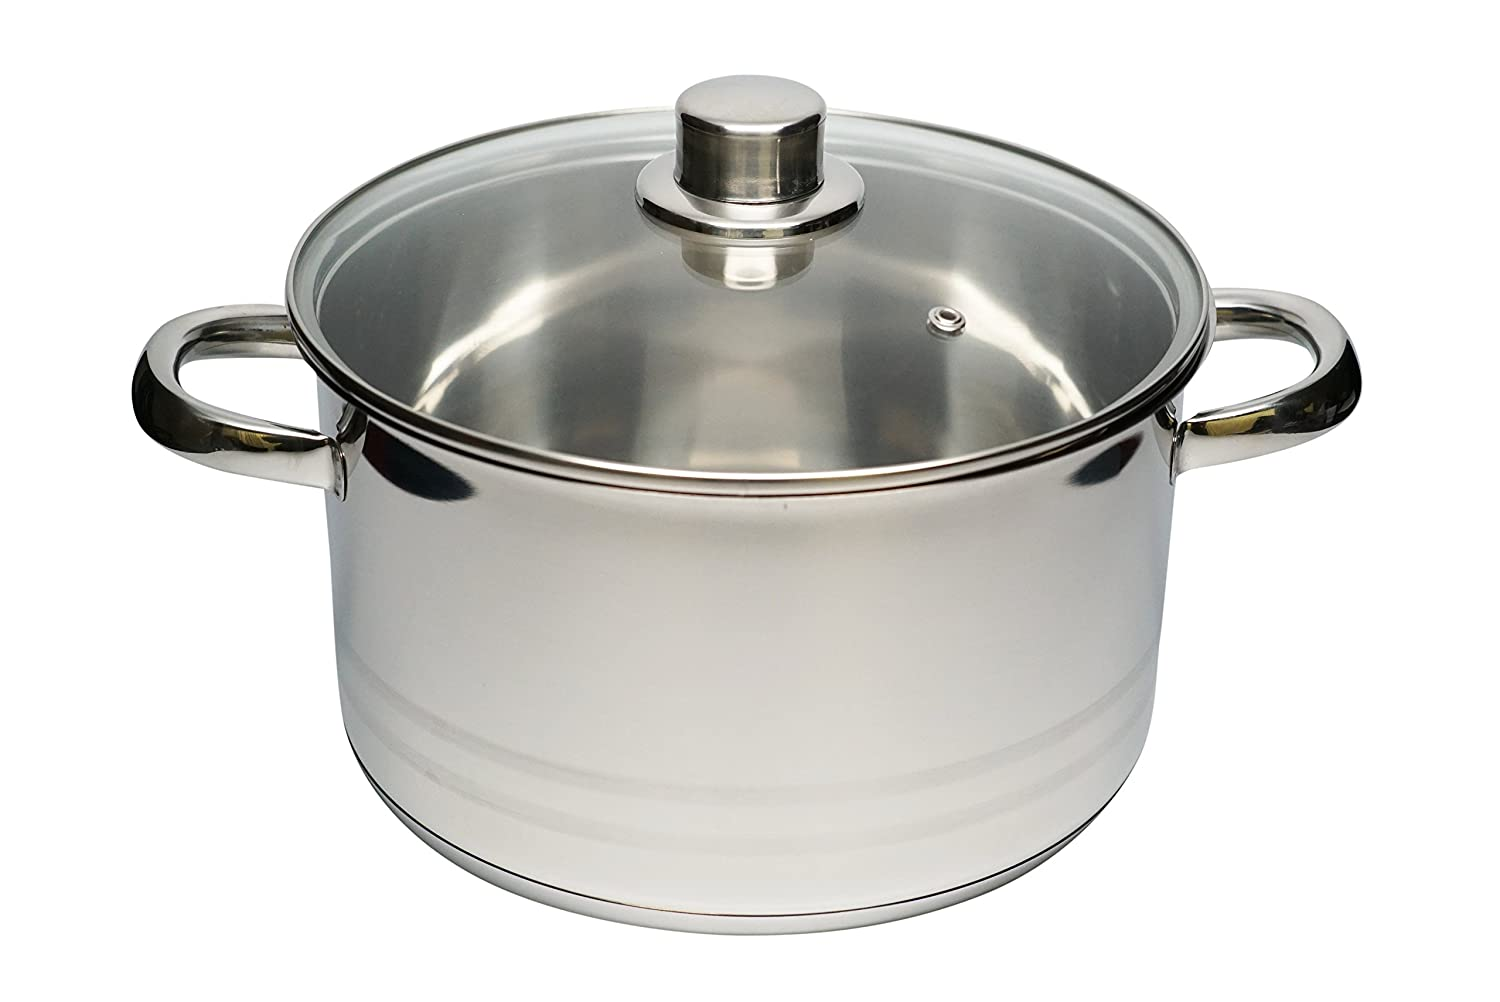 ELO Cookware Skyline Stainless Steel Kitchen Induction Cookware Pots and Pans